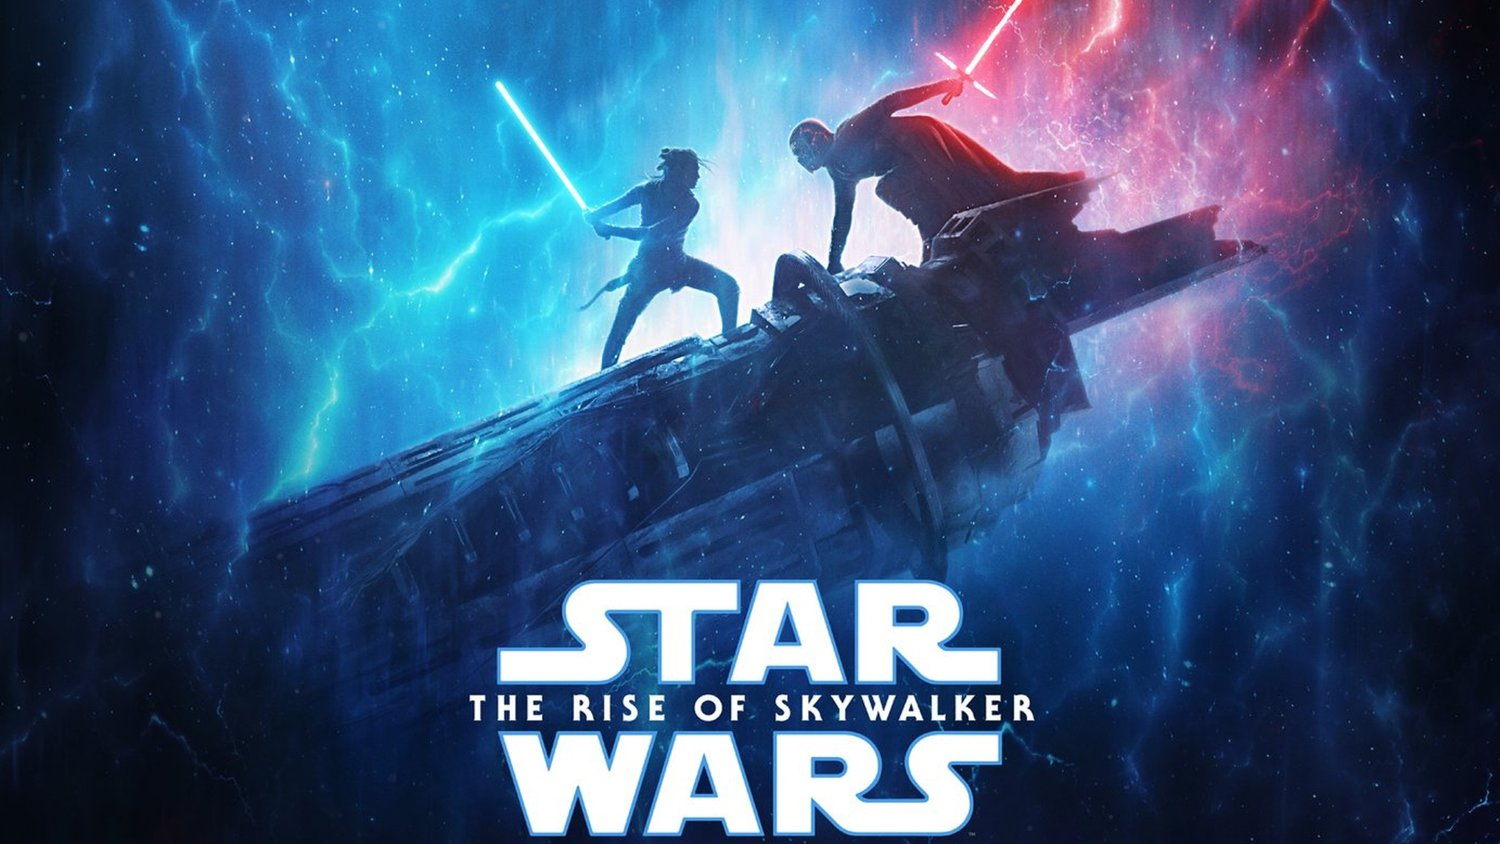 First Star Wars Rise Of Skywalker Review From Cast Member Richard E Grant Absolutely Everything That You Hoped It Was Going To Be Showbiz411